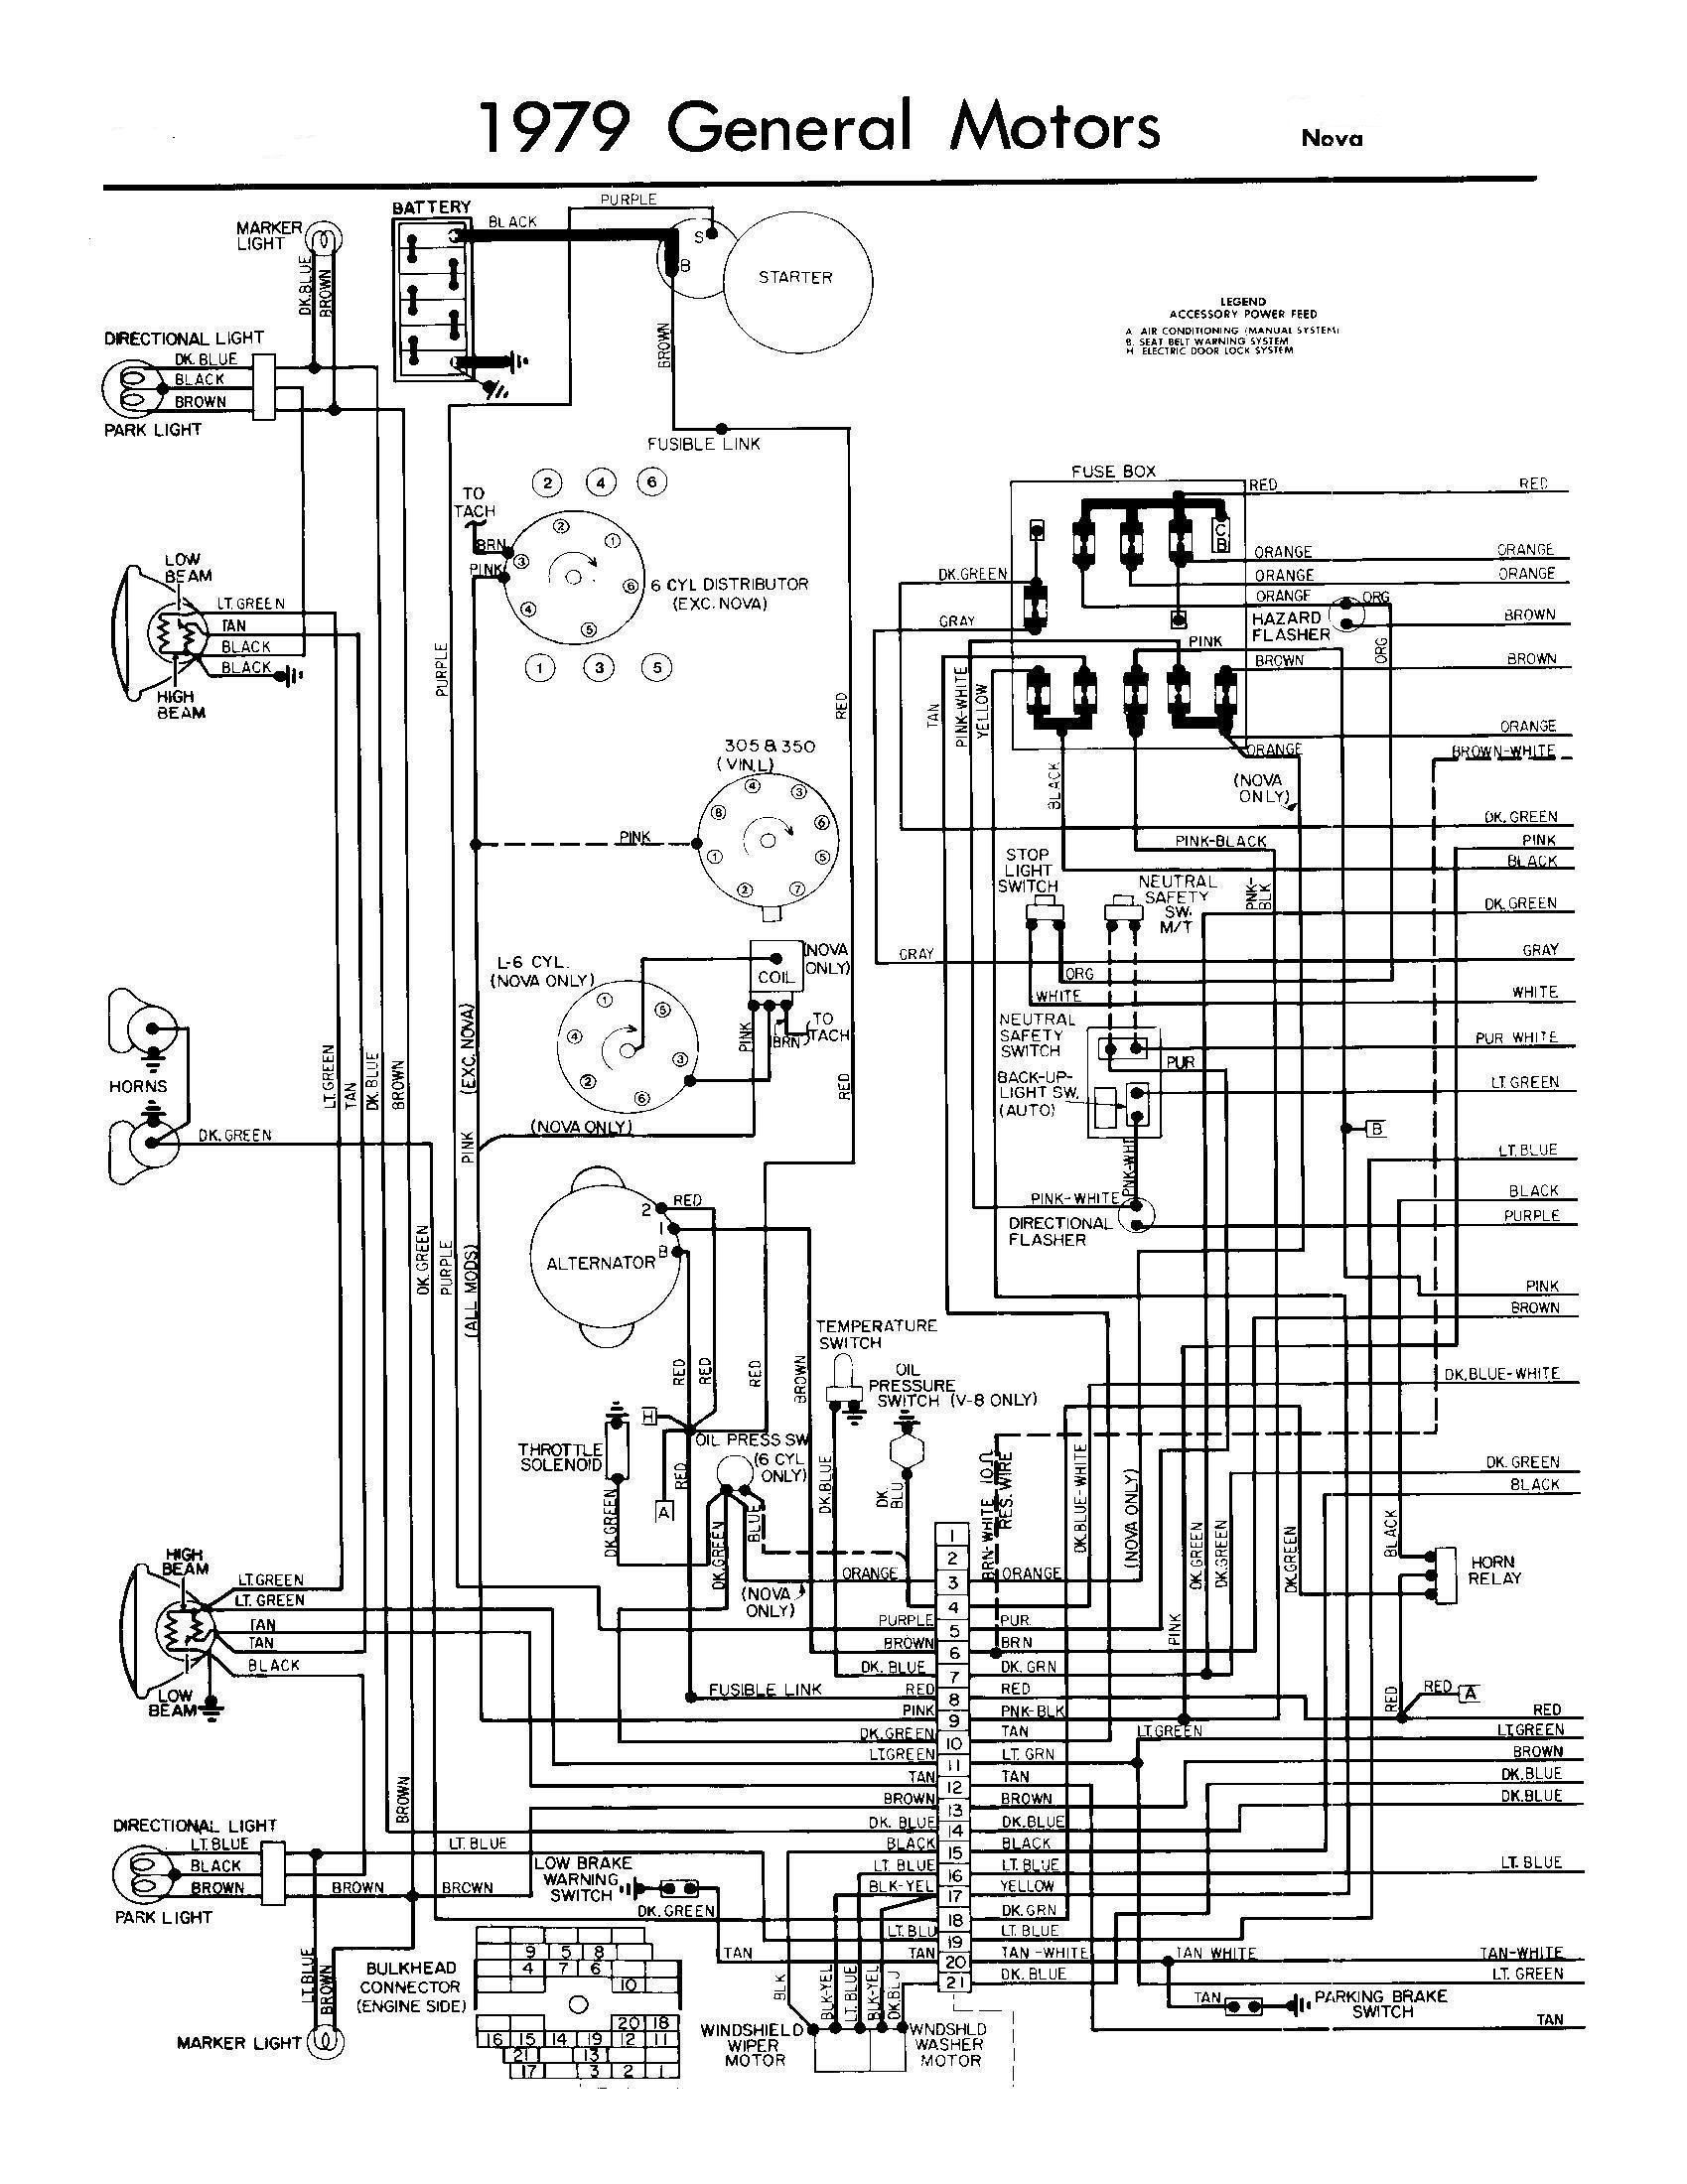 1970 monte carlo power window wiring diagram